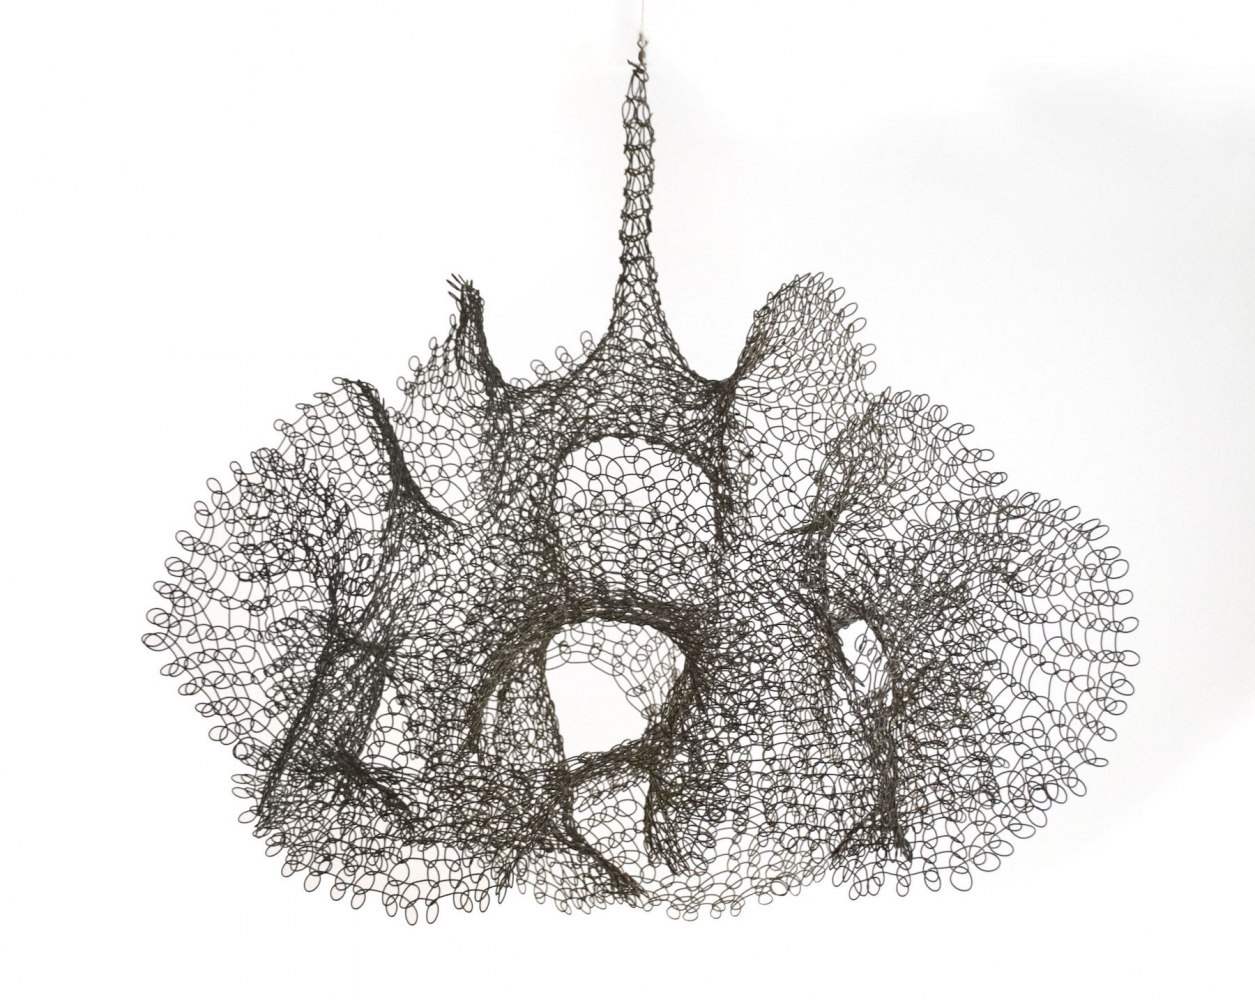 RUTH ASAWA - Artists - Alan Koppel Gallery